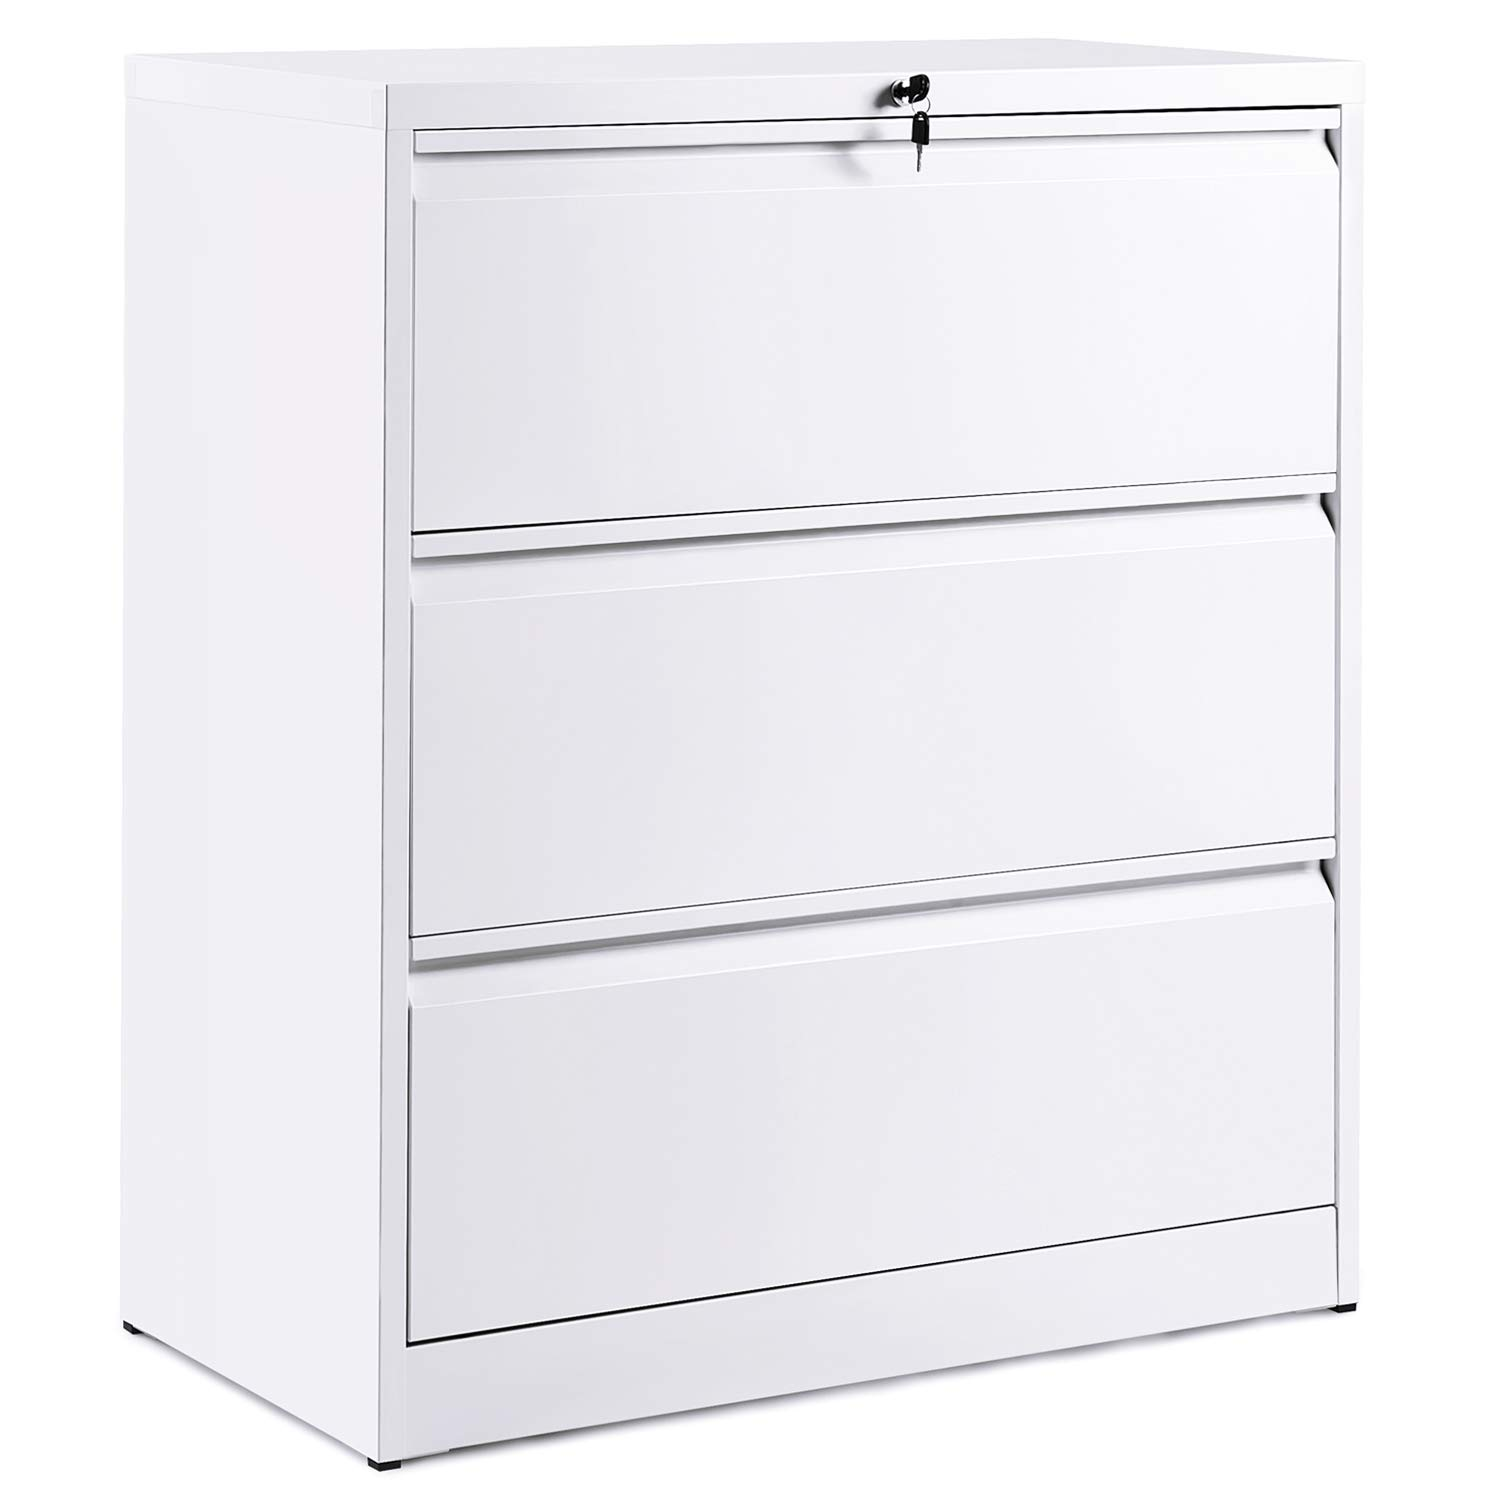 ModernLuxe Lateral File Cabinet 3-Drawer with Lock and Key (White)